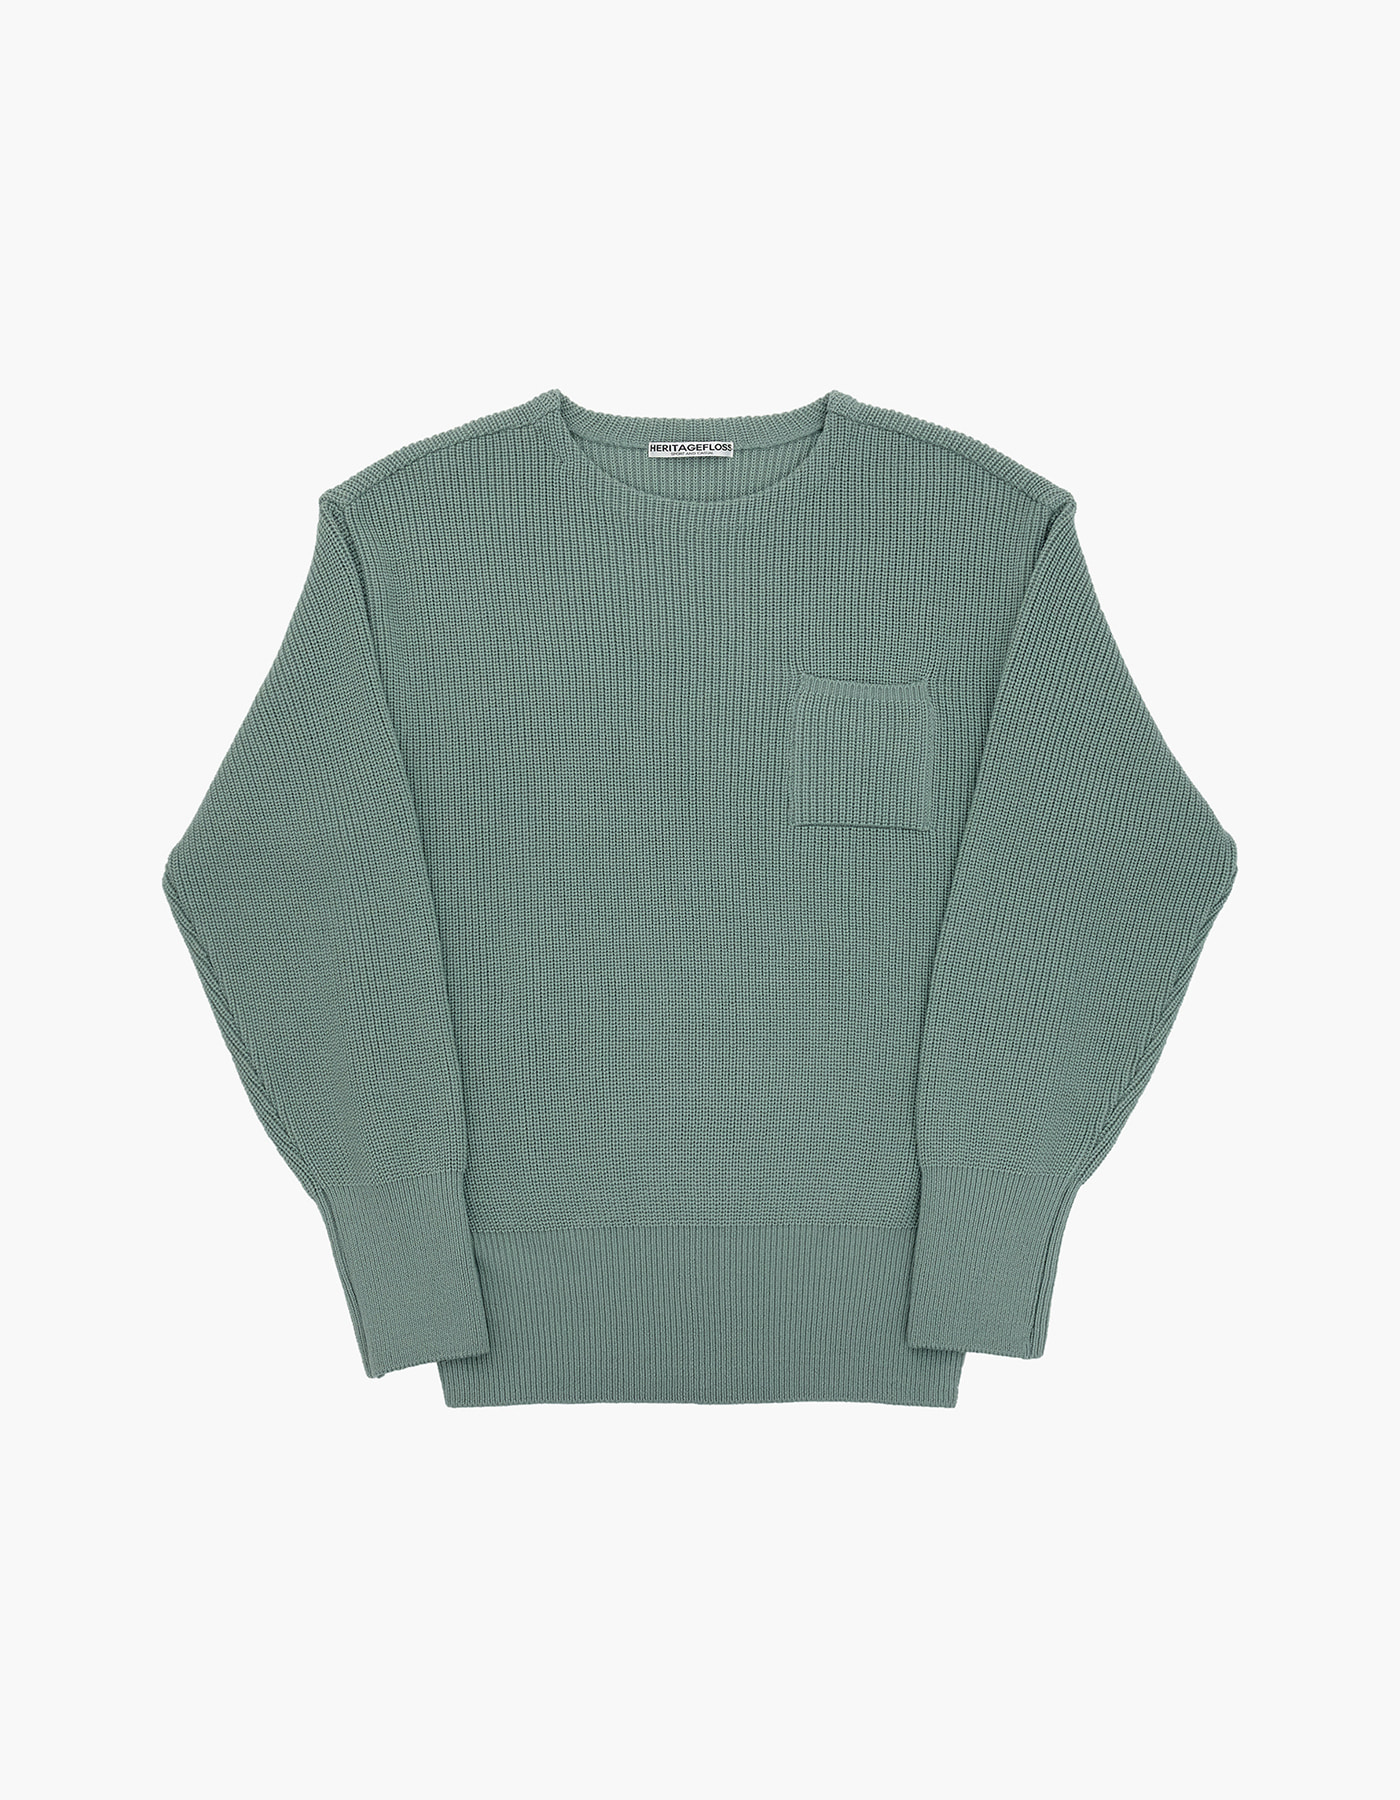 WOOL KNIT / JADE